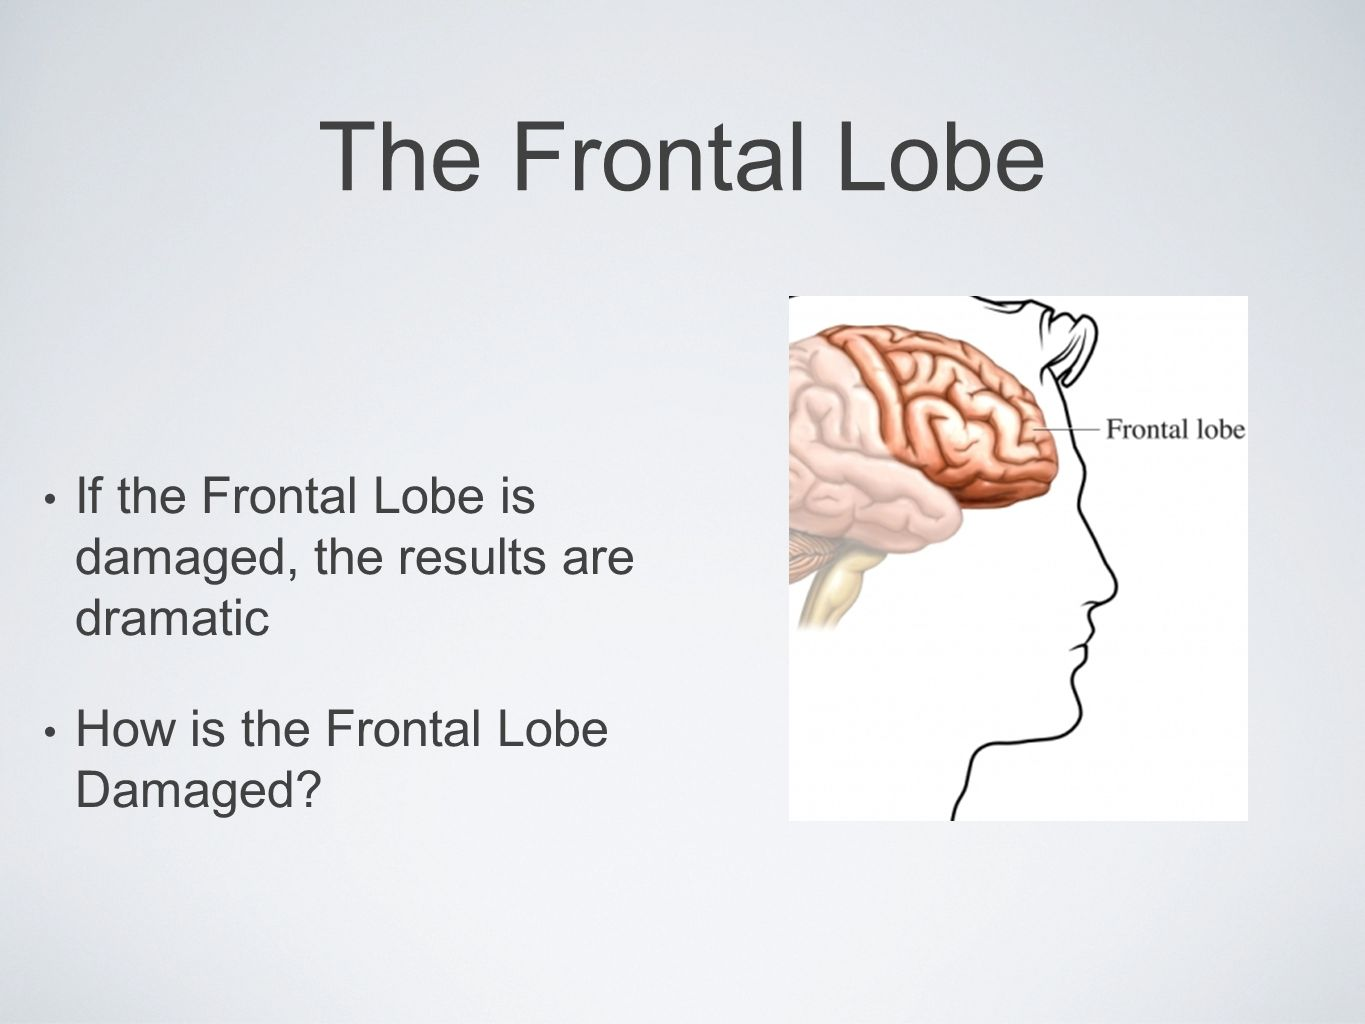 The Frontal Lobe If the Frontal Lobe is damaged, the results are dramatic How is the Frontal Lobe Damaged